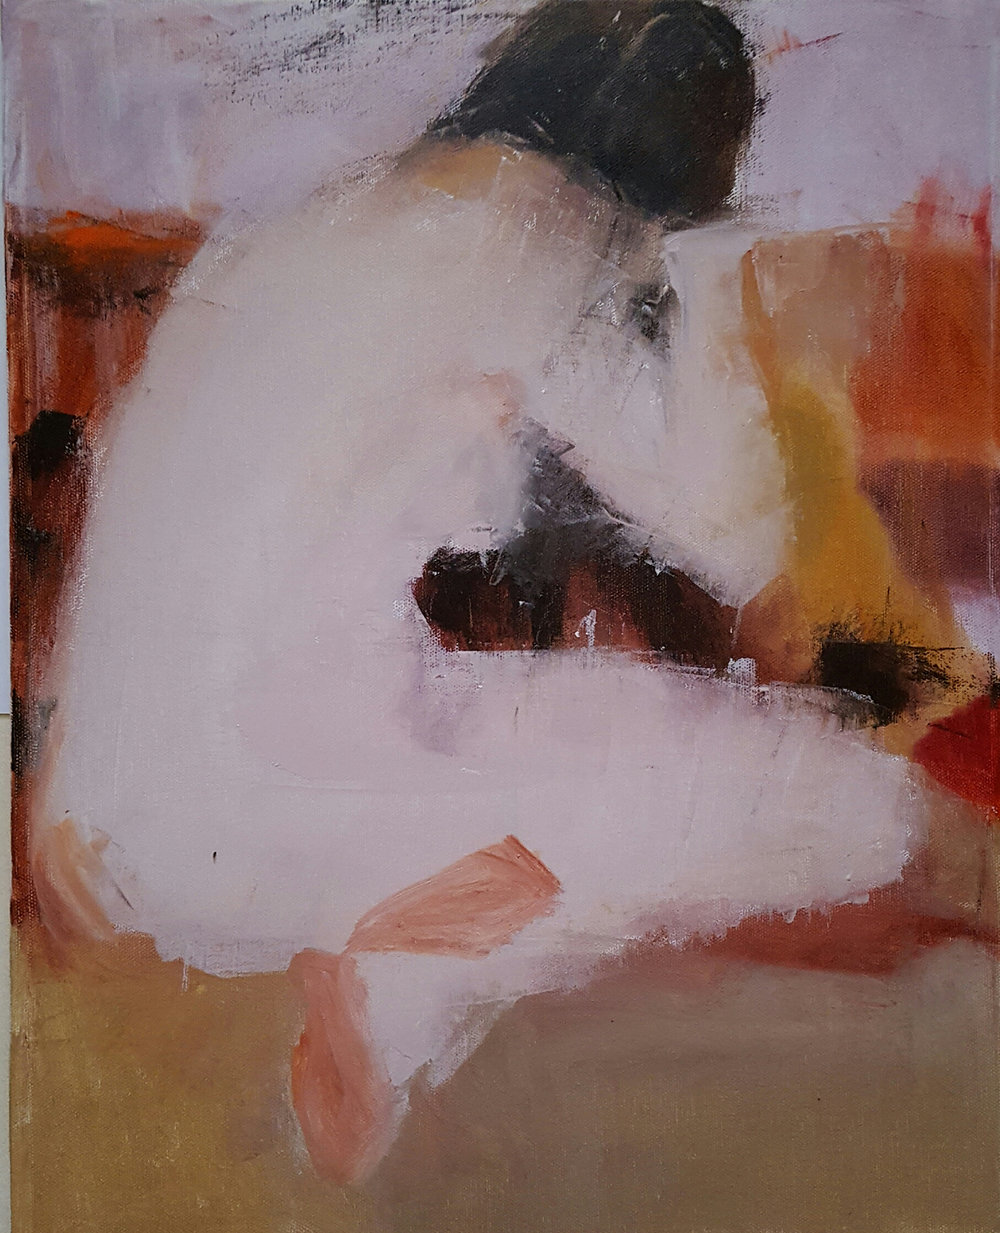 Sitting Nude Abstract, 16x20 - $400